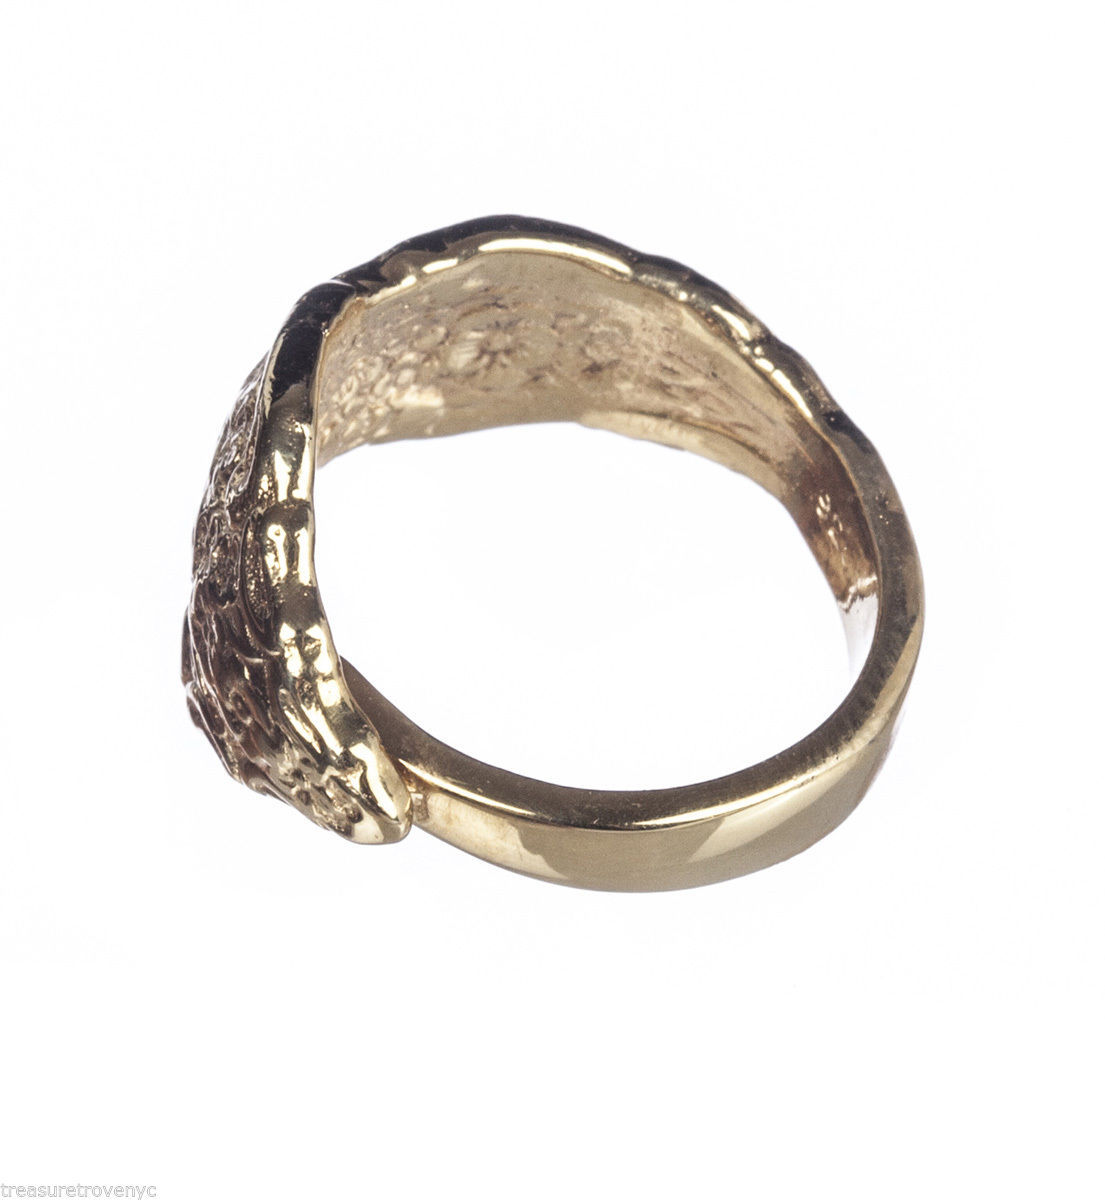 18 kt gold vermeil sterling silver ornate spoon ring